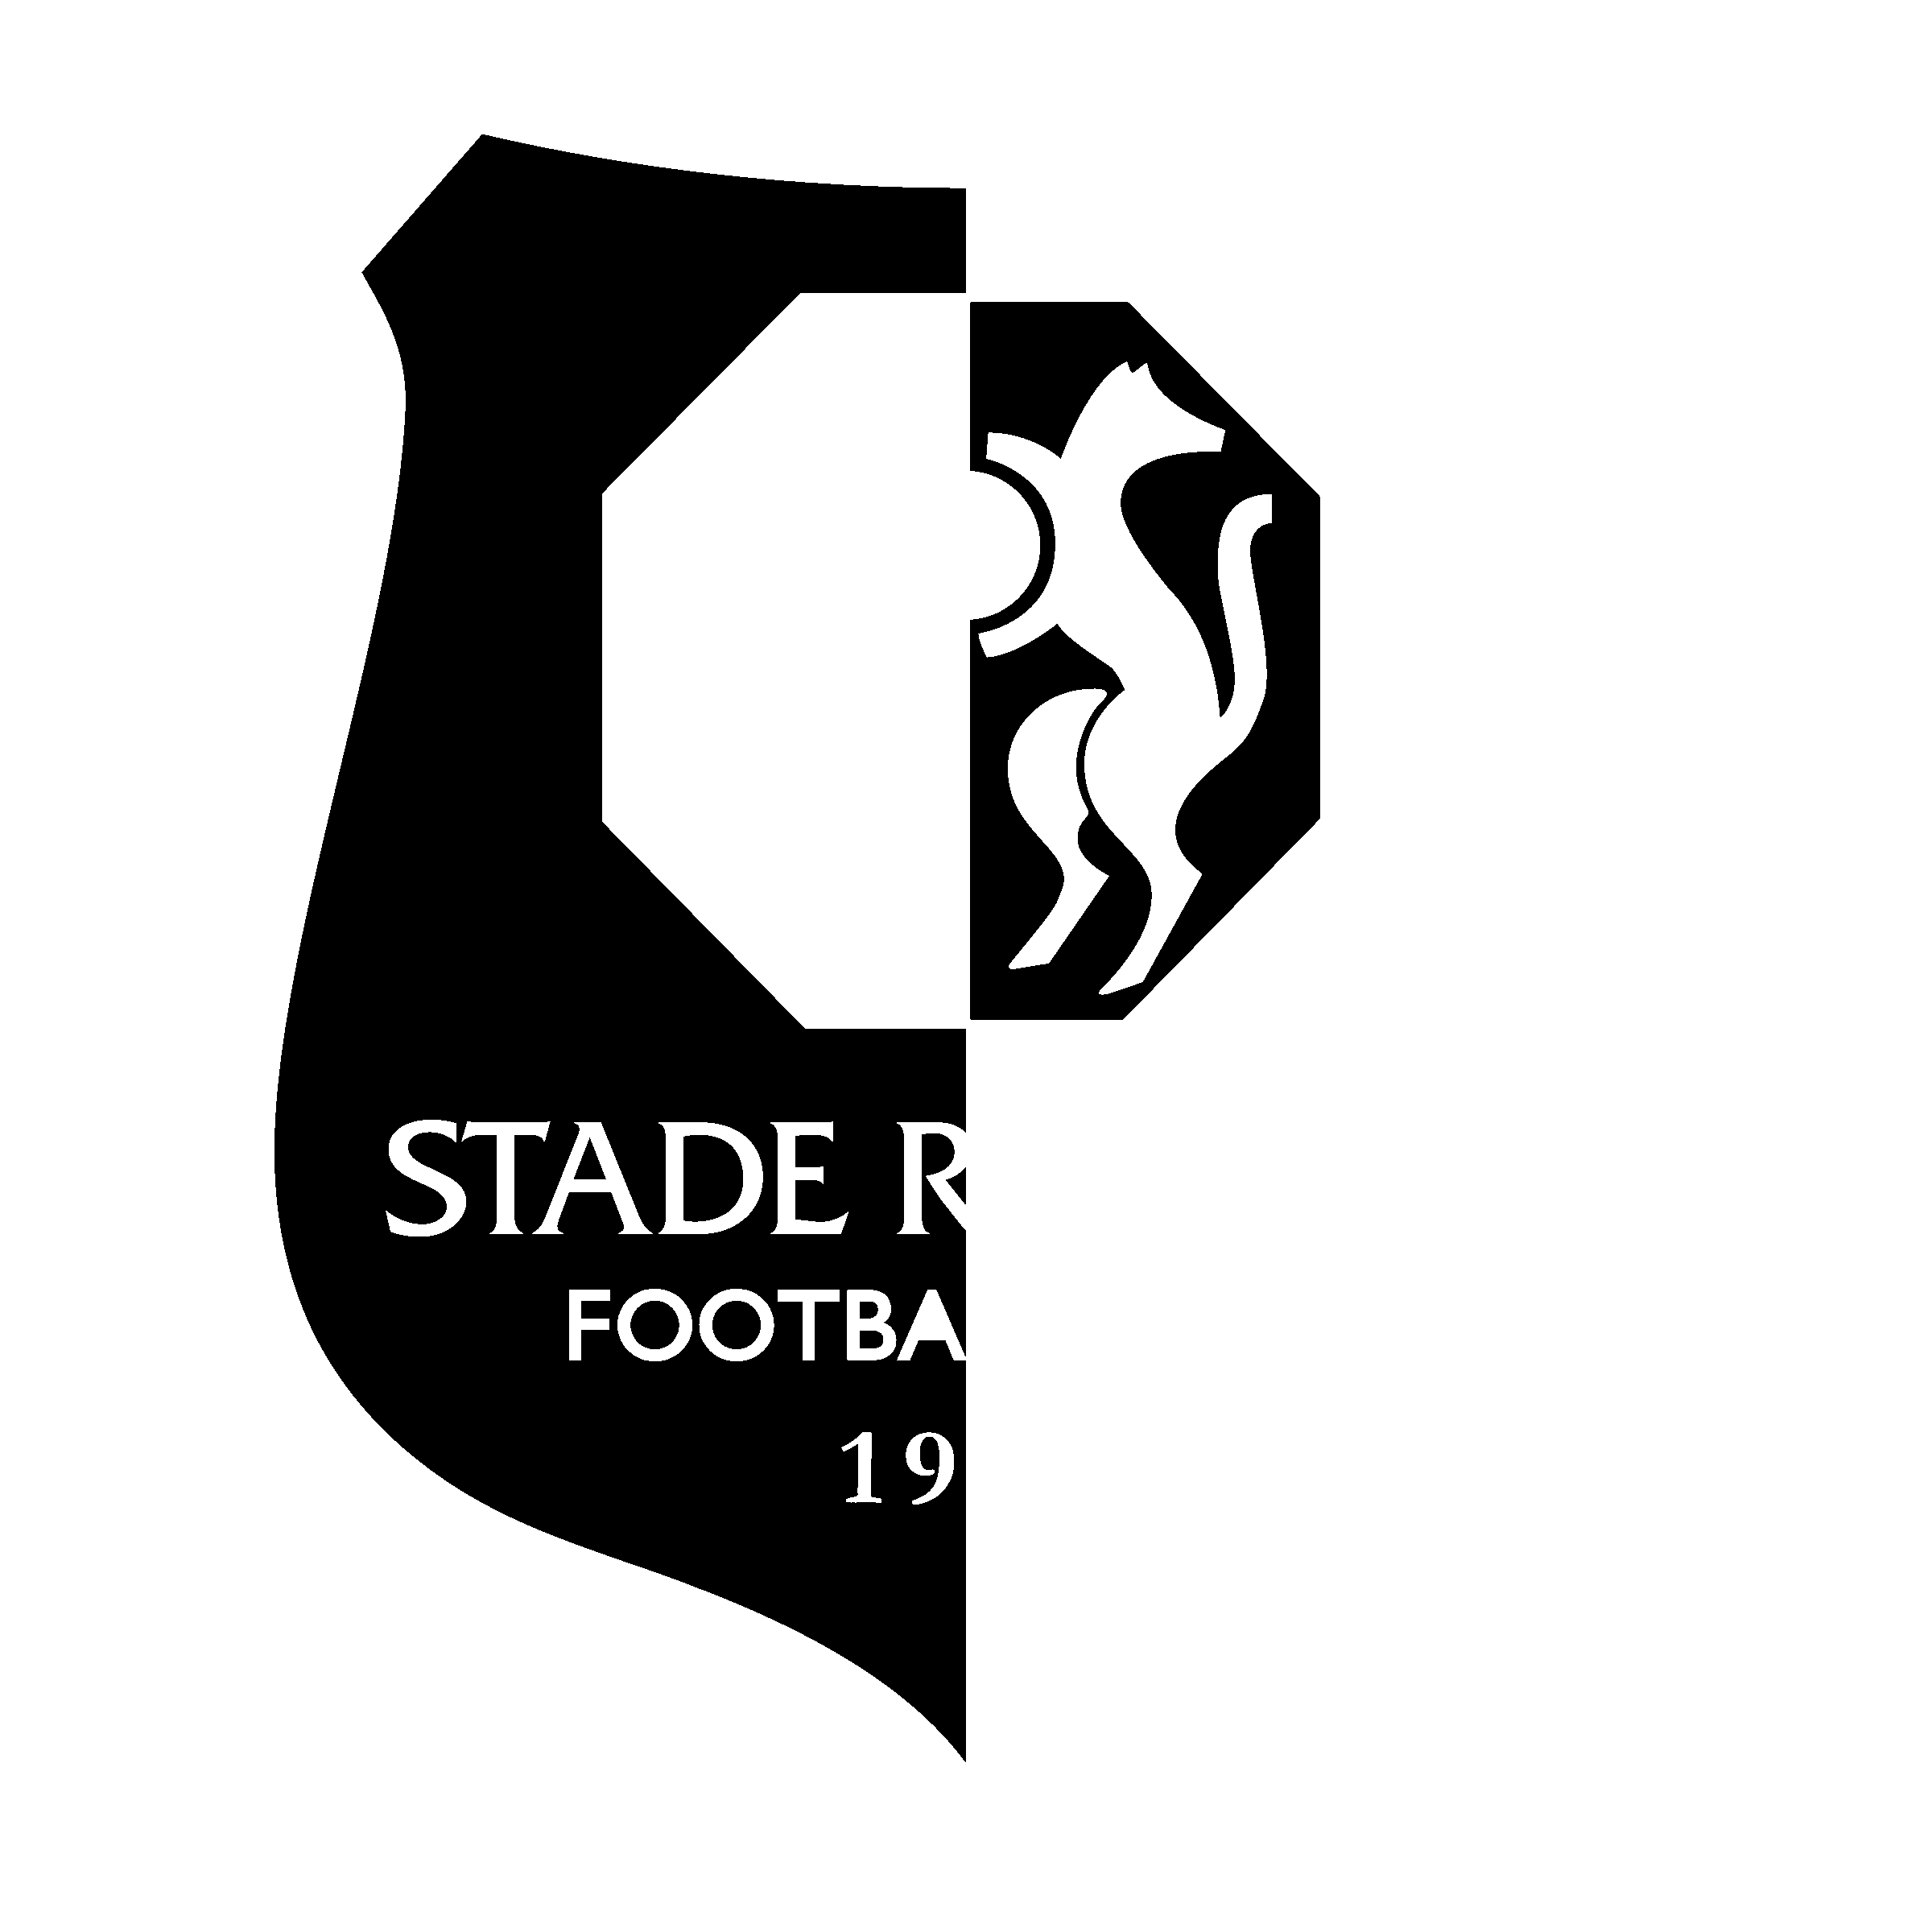 Stade rennais fc logo png transparent svg vector freebie supply - Stade rennais logo ...